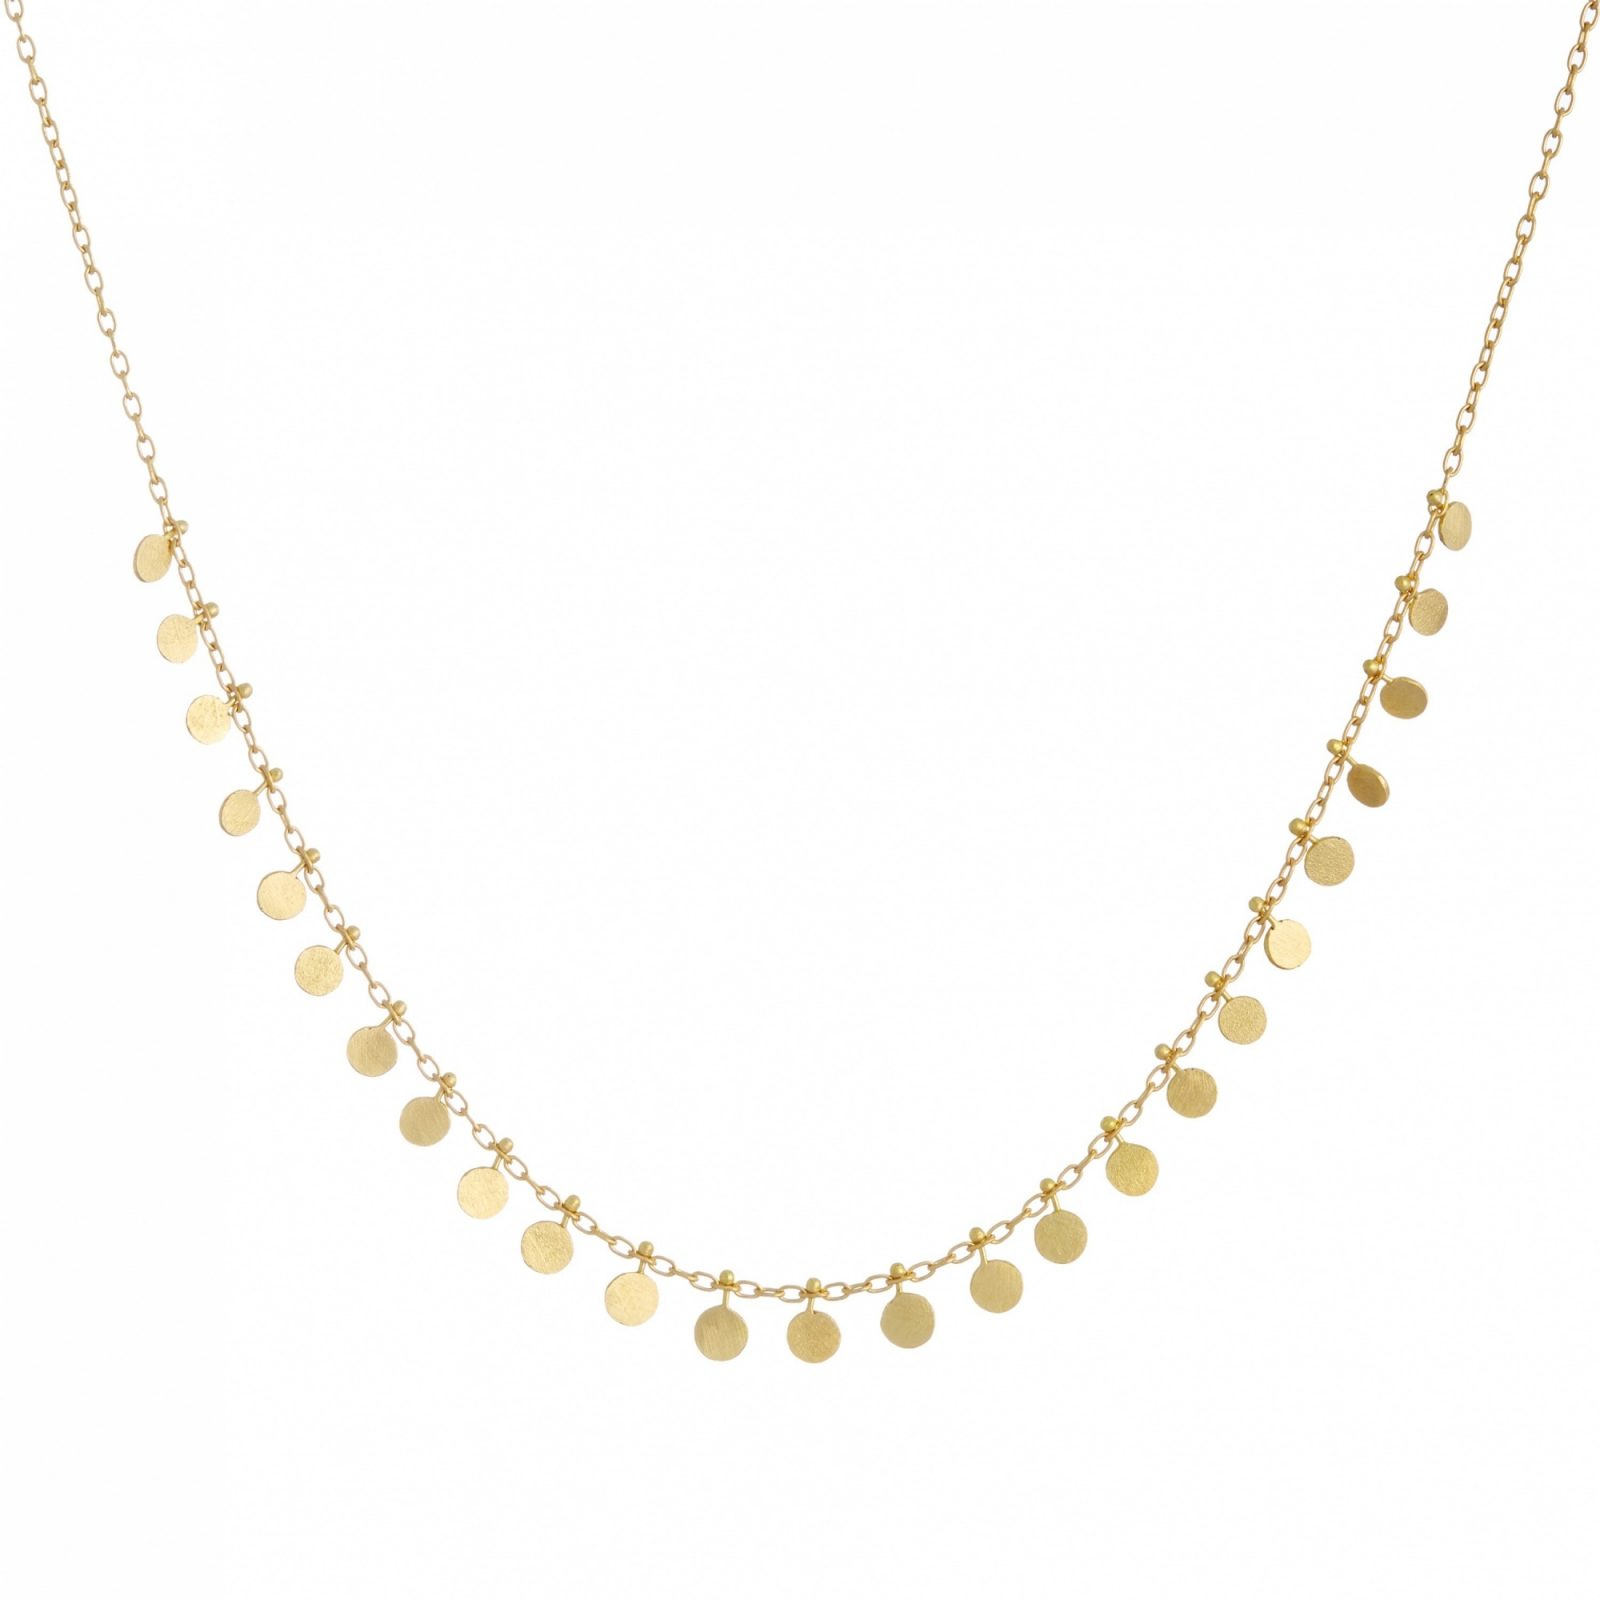 Sia Taylor DN11 Y Medium Yellow Gold Dots Necklace WB